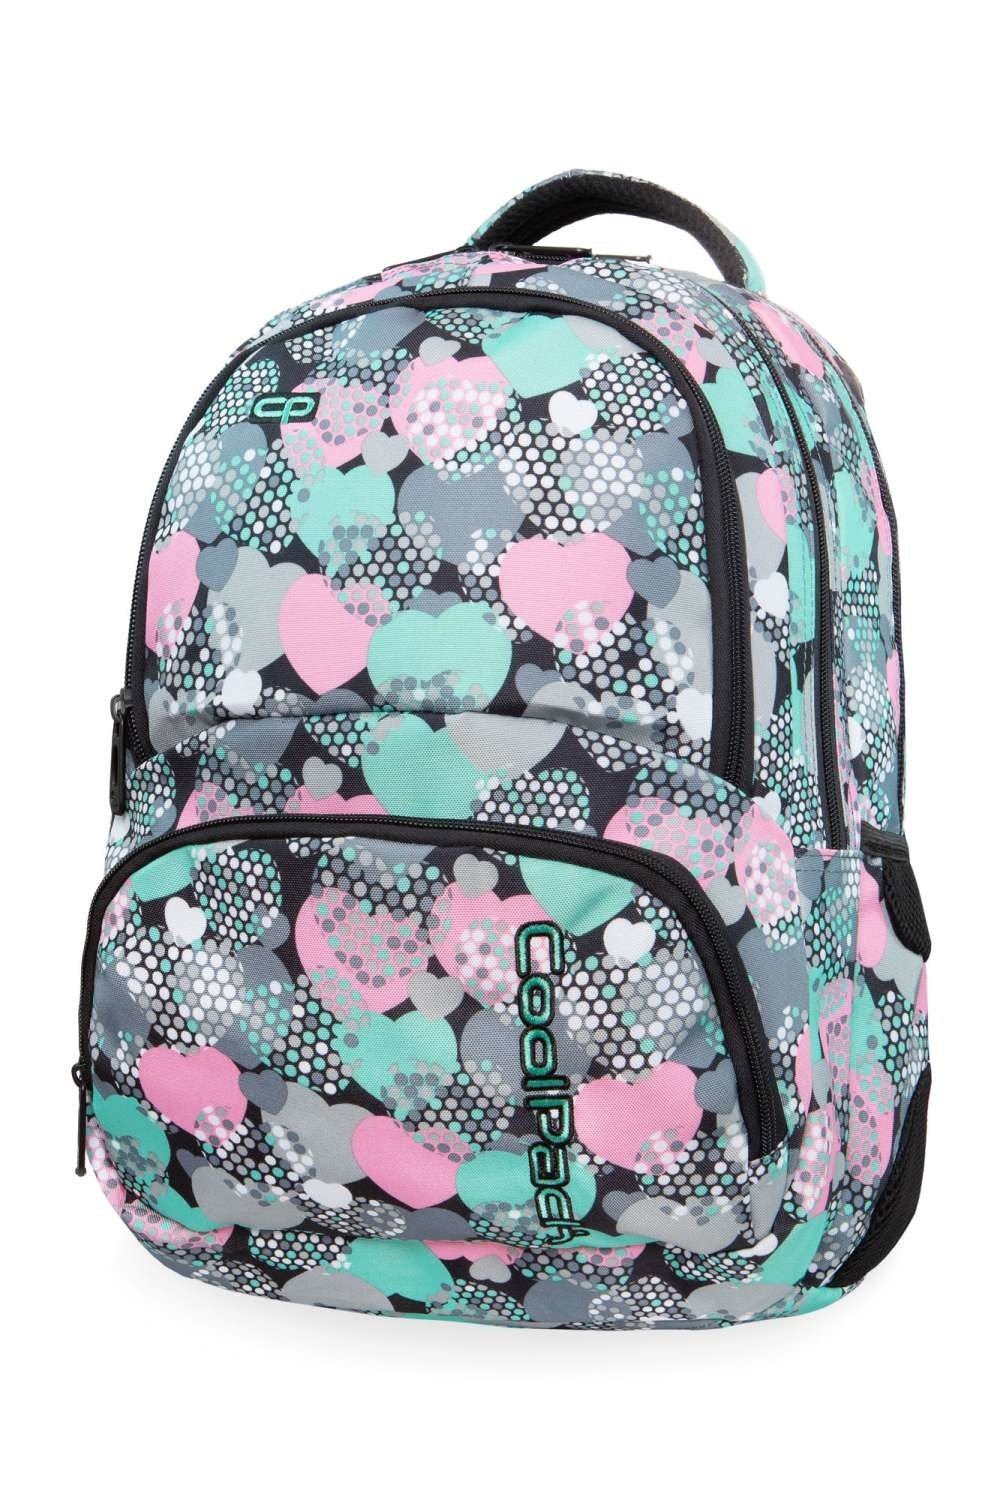 2c2be737e8f7c ... Plecak CoolPack SPINER MINTY HEARTS B01018 ...